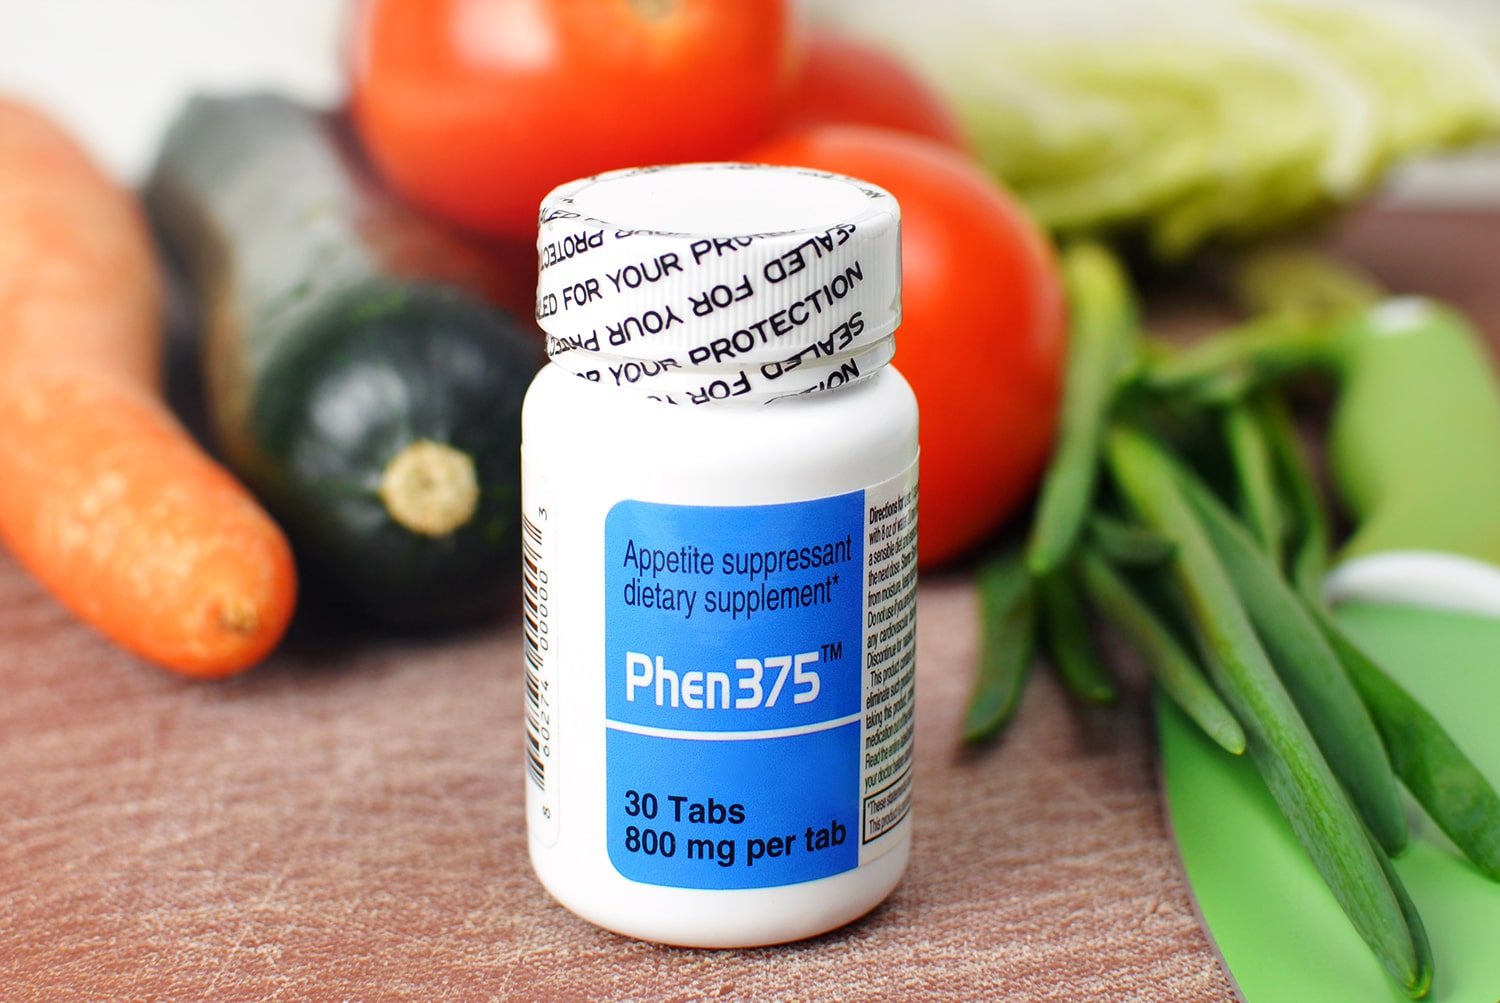 Where To Buy Phen375 Walmart or Amazon